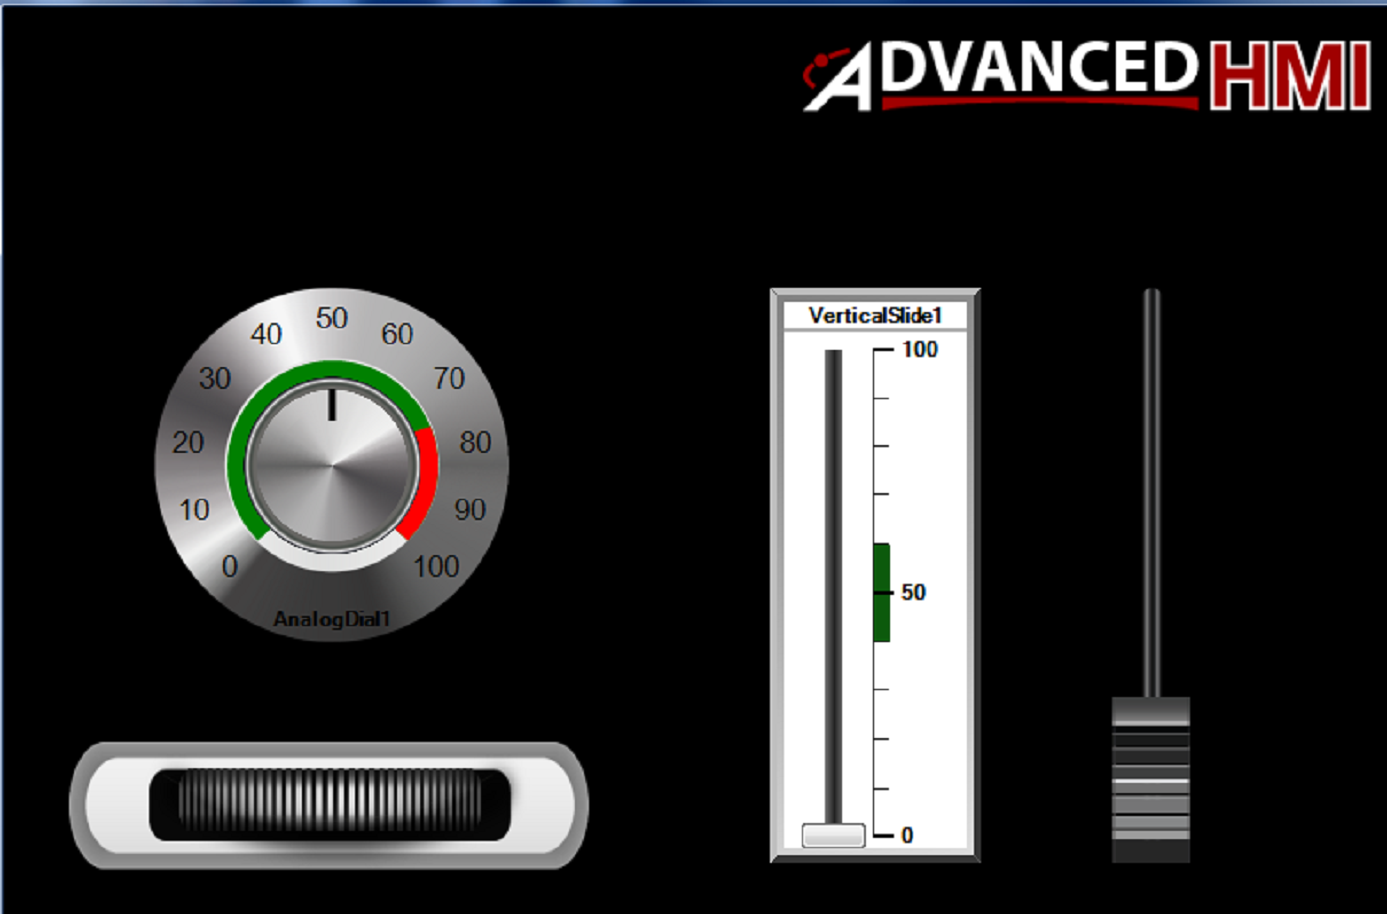 HMI Software by AdvancedHMI, Solution to Monitor and Control